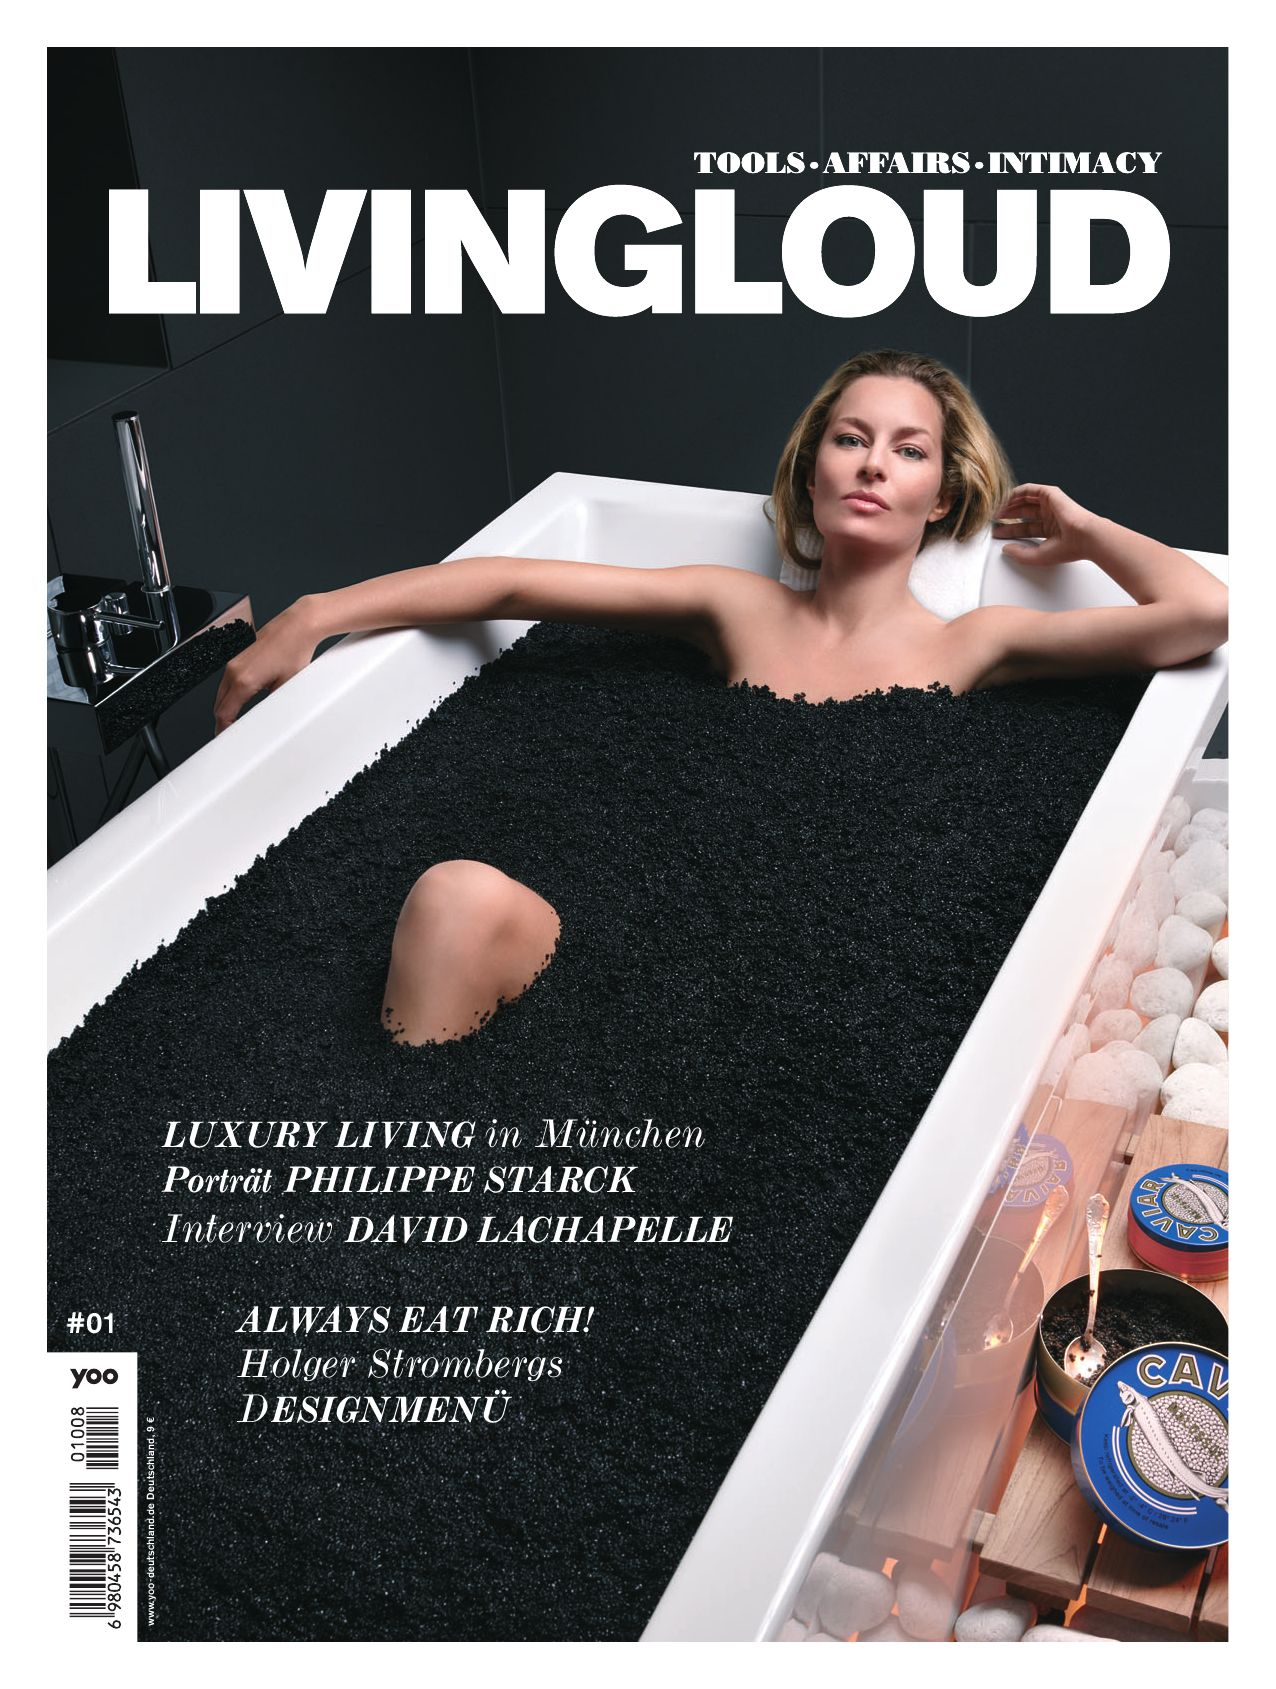 b324862ecc088 LIVINGLOUD 1 by tpa gmbh - issuu